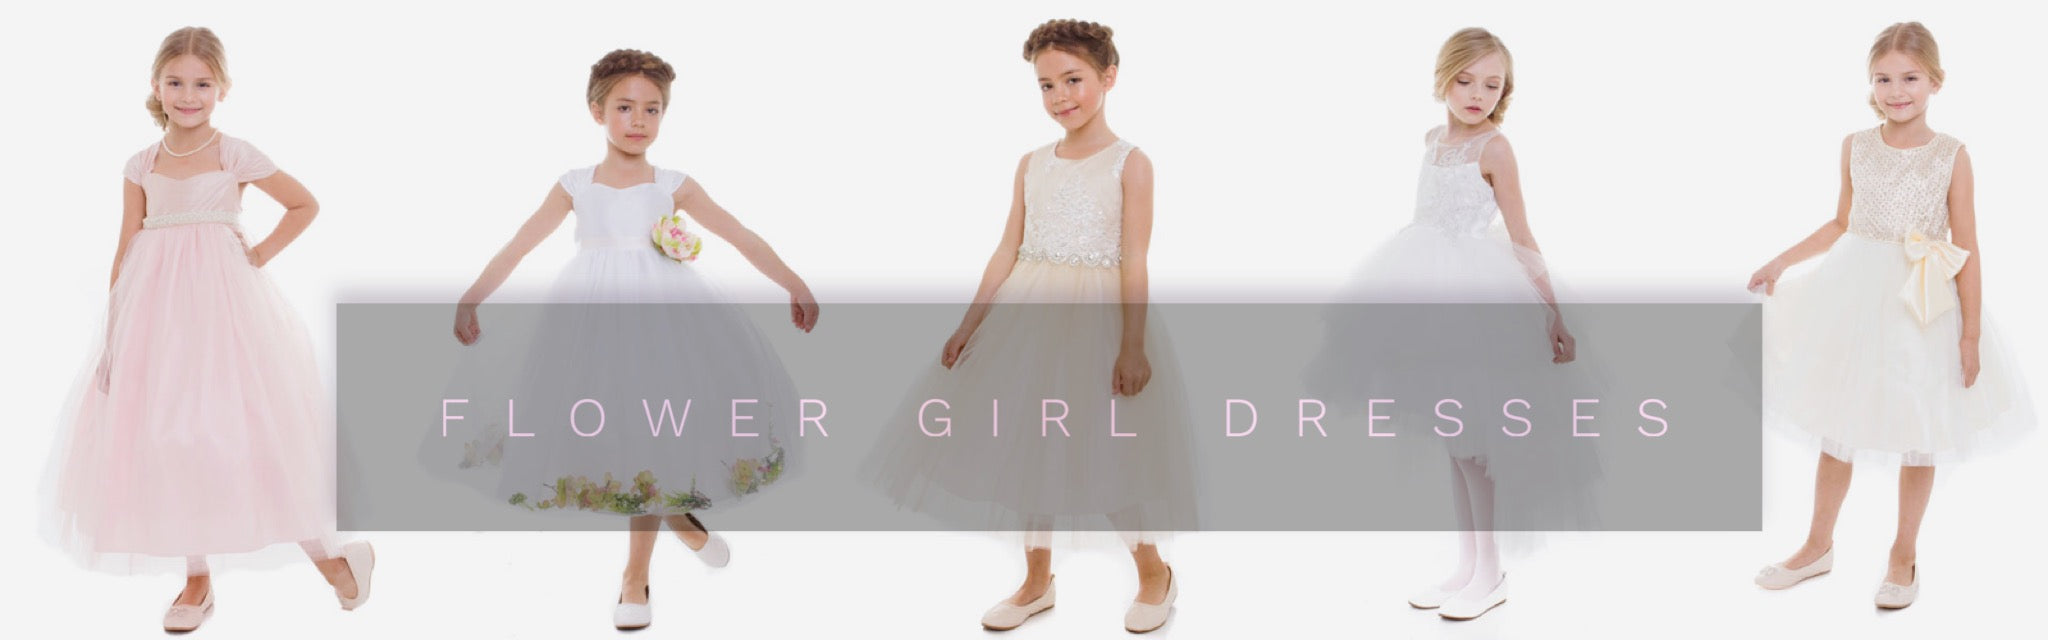 Extraordinary Range Of Flower Girl Dresses At Discounted Prices My